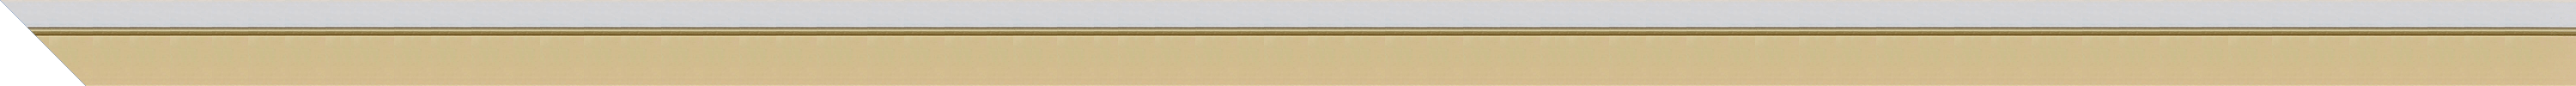 frame border n37-188 frames by mail